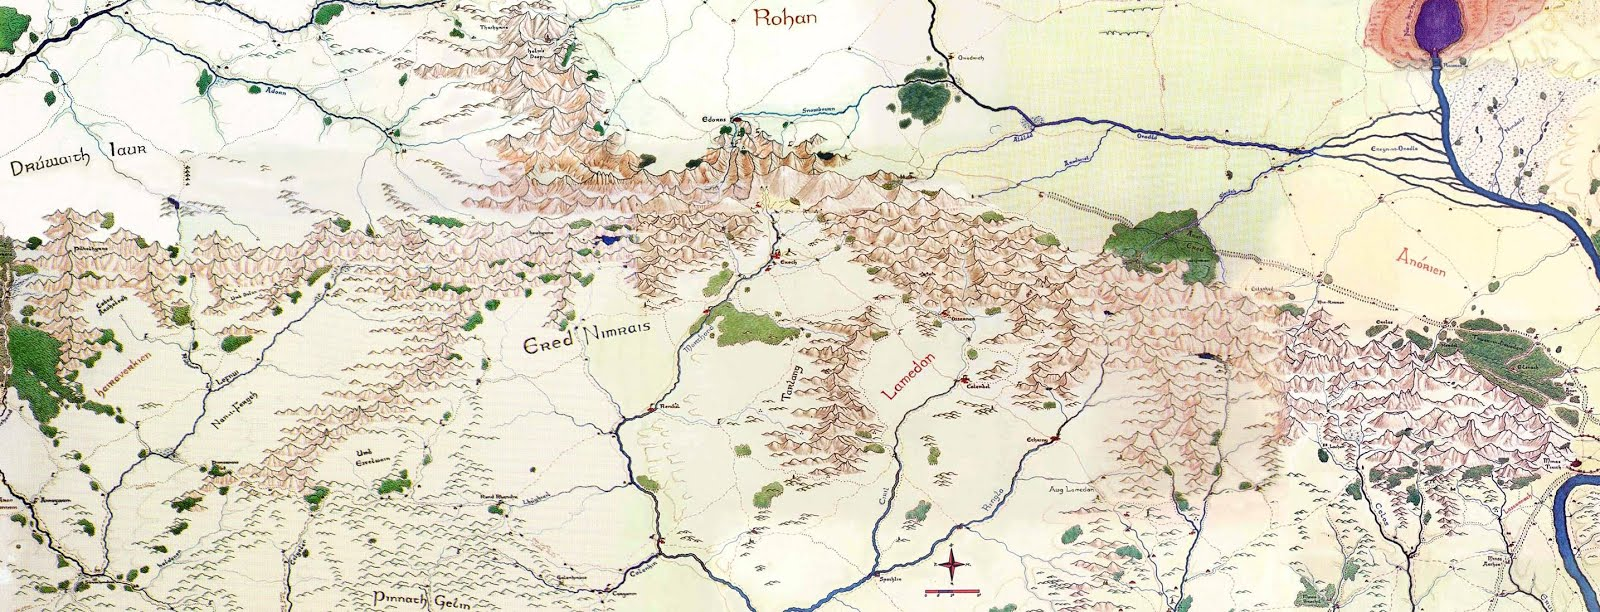 Akratic Wizardry: Maps! on lord of the rings map, the hobbit map, kingdoms of middle earth buildings,